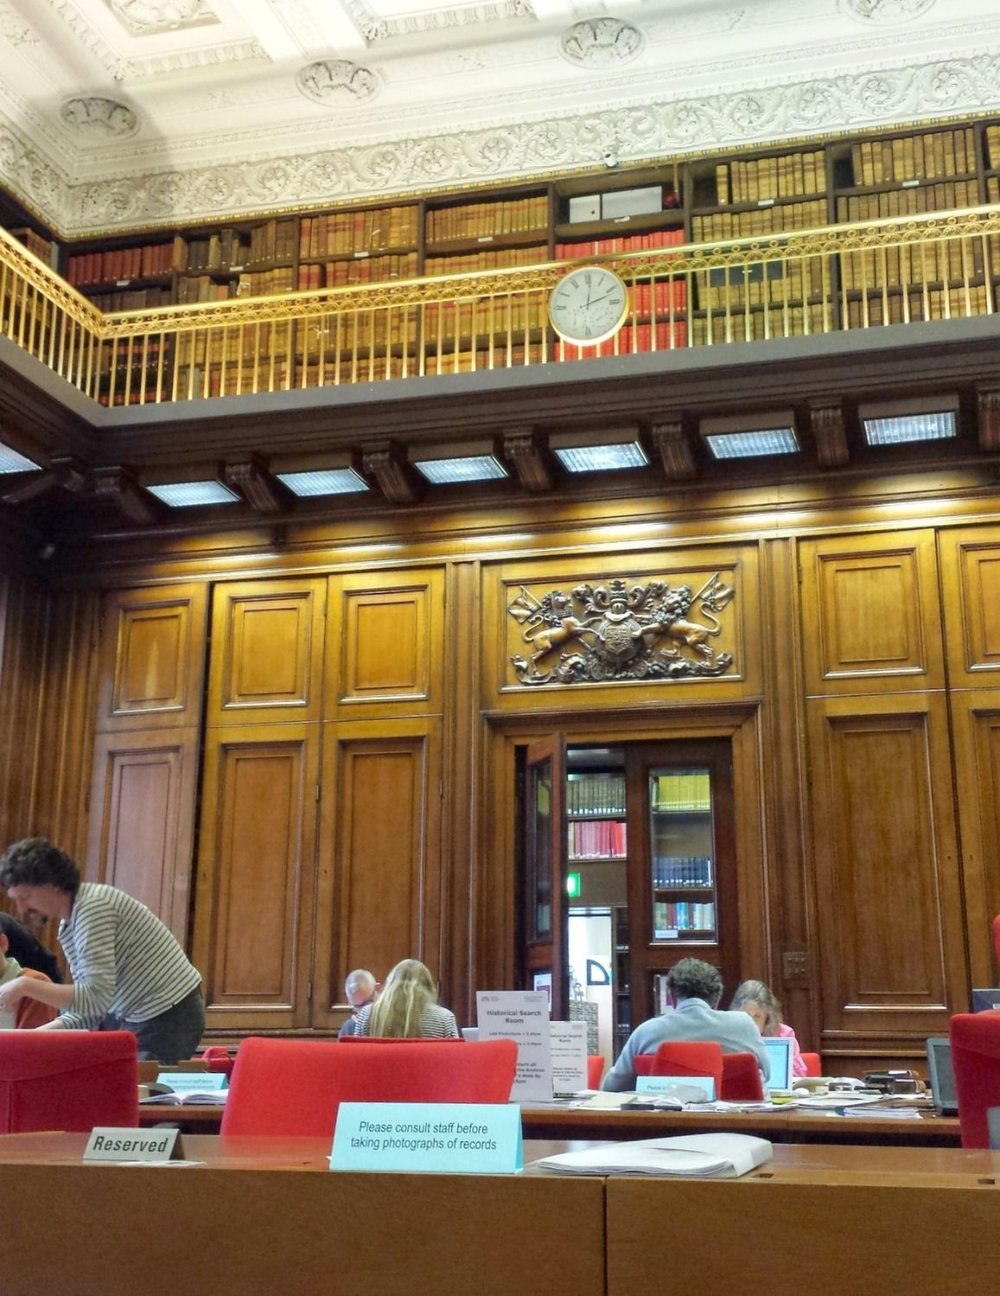 The ScotlandsPeople Centre is the official government resource for family history research. It is located in central Edinburgh with search rooms in General Register House and New Register House. This shows one of the search rooms in General Register House.